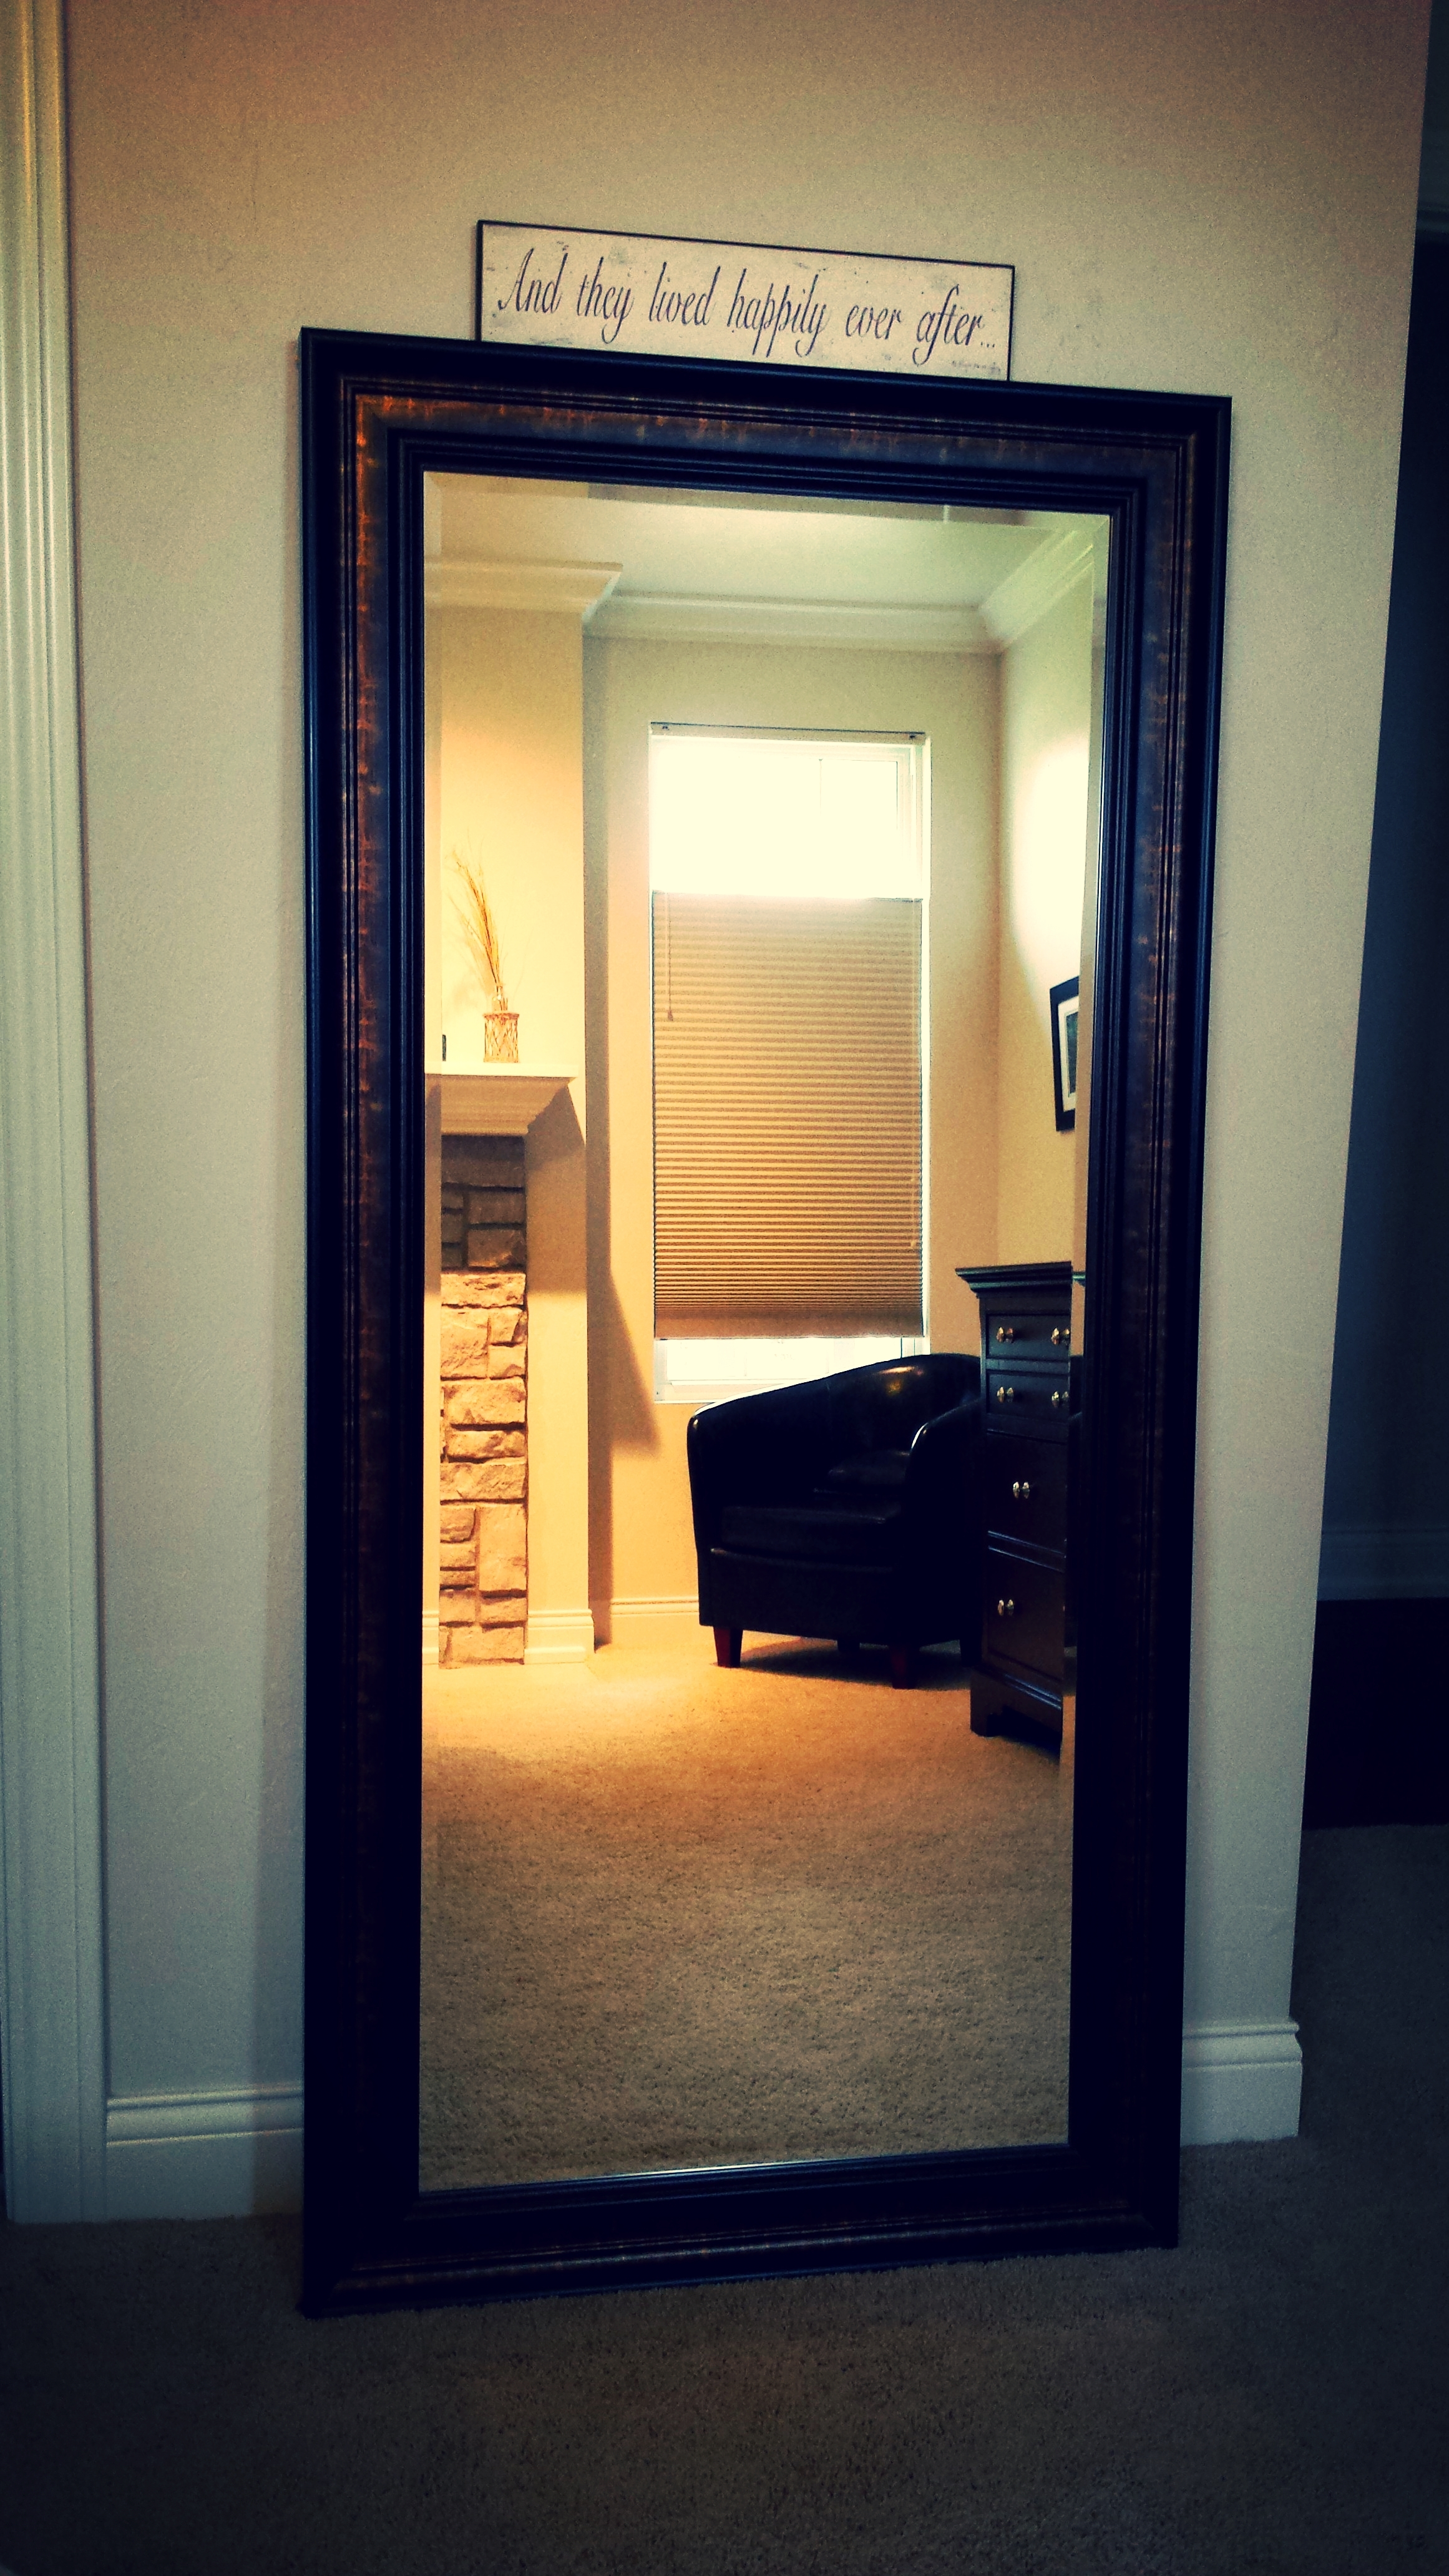 Mirrors are a great way to create the illusion of a larger space. This large mirror is functional, and serves a design purpose! Love when decor can do both!